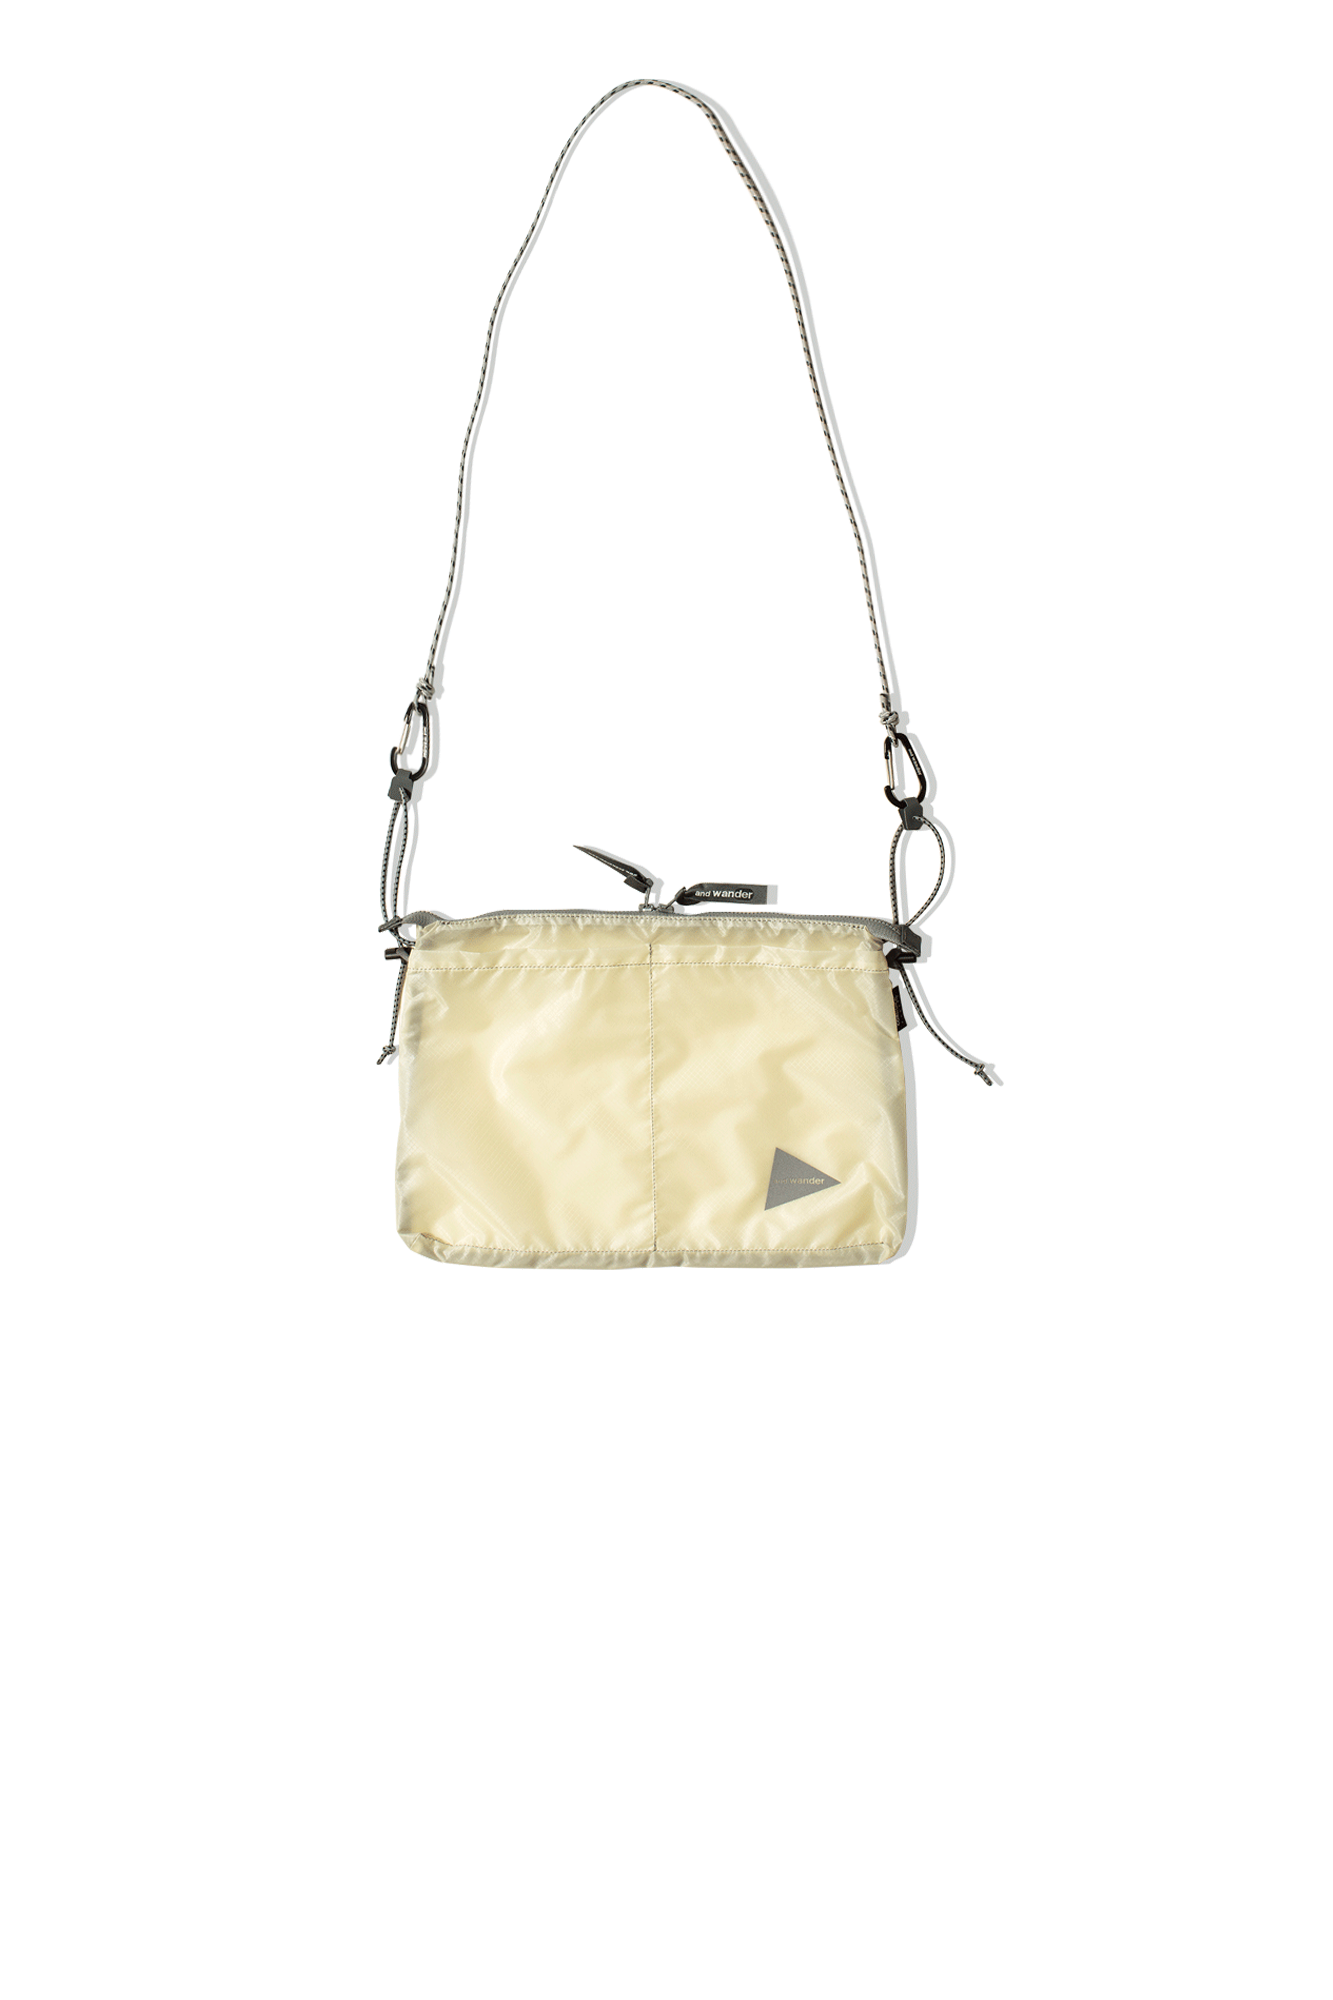 And Wander Shoulder bags Sil Sacoche White 5741175404#000#031#OS - One Block Down